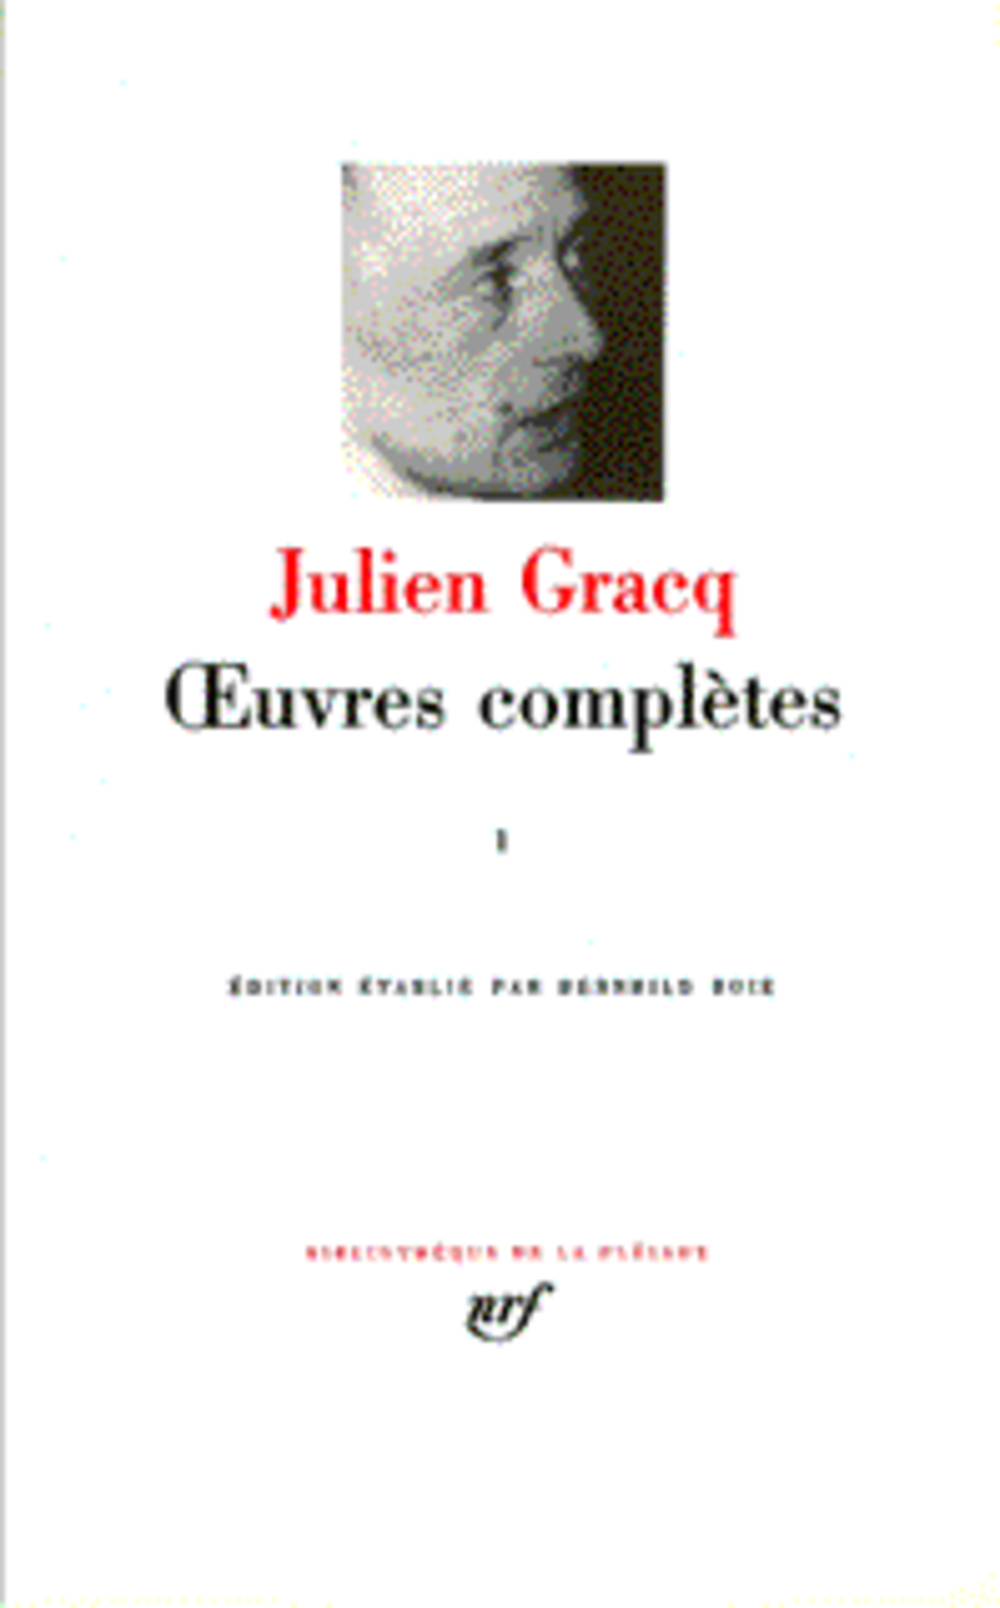 GRACQ JULIEN - OEUVRES COMPLETES